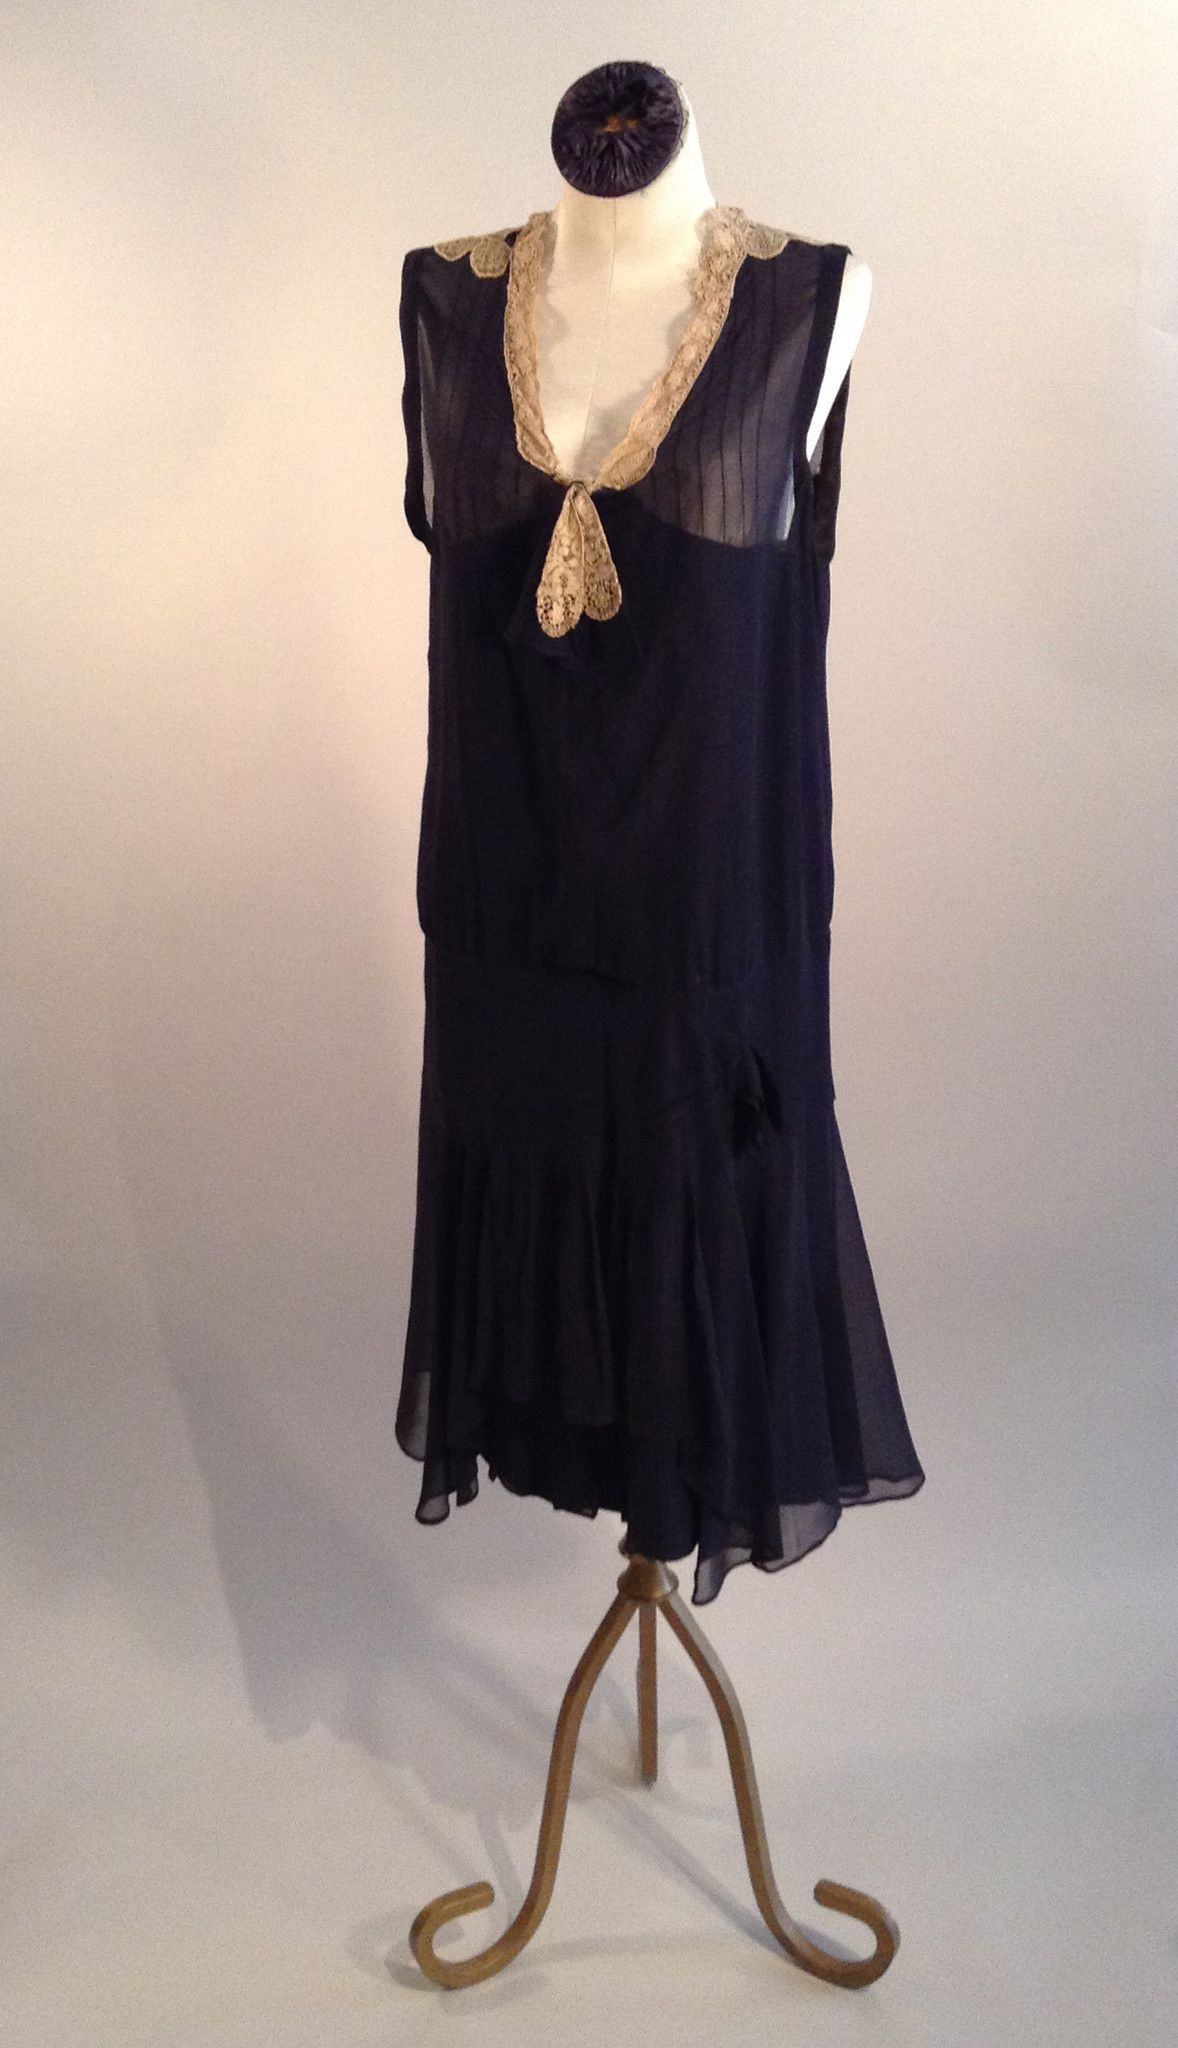 Navy chiffon with fitted hip. Original sleeves have been removed due to damage, armhole is finished. Size: 2/4